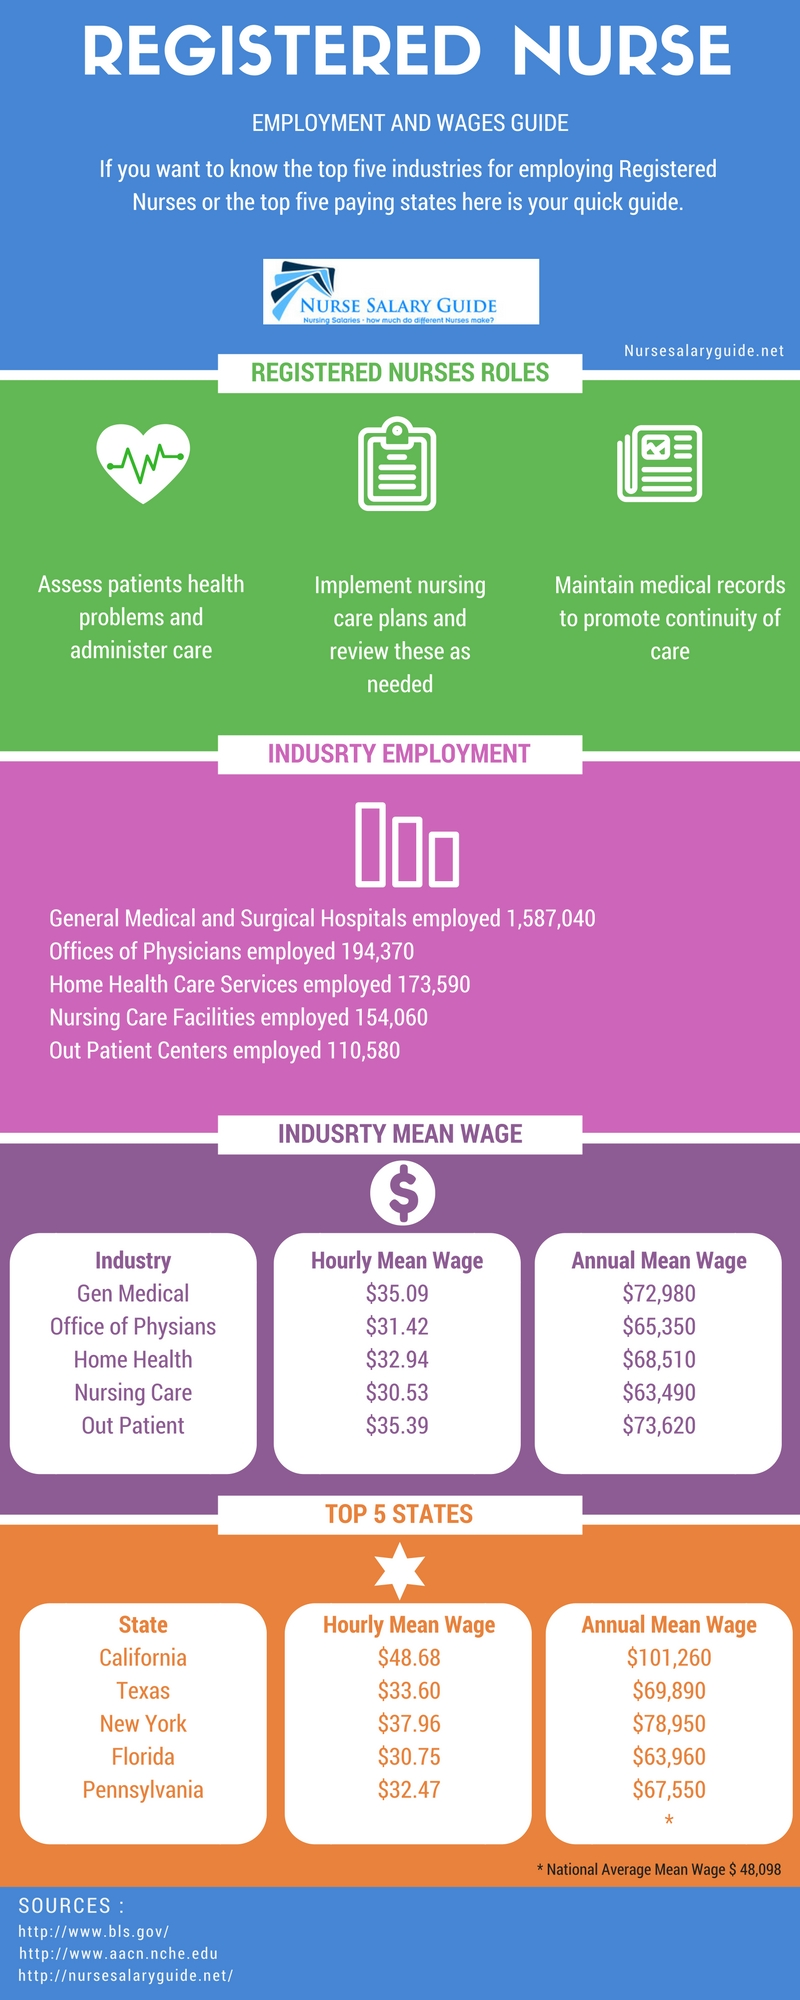 Registered Nurse Employment and Wages Guide